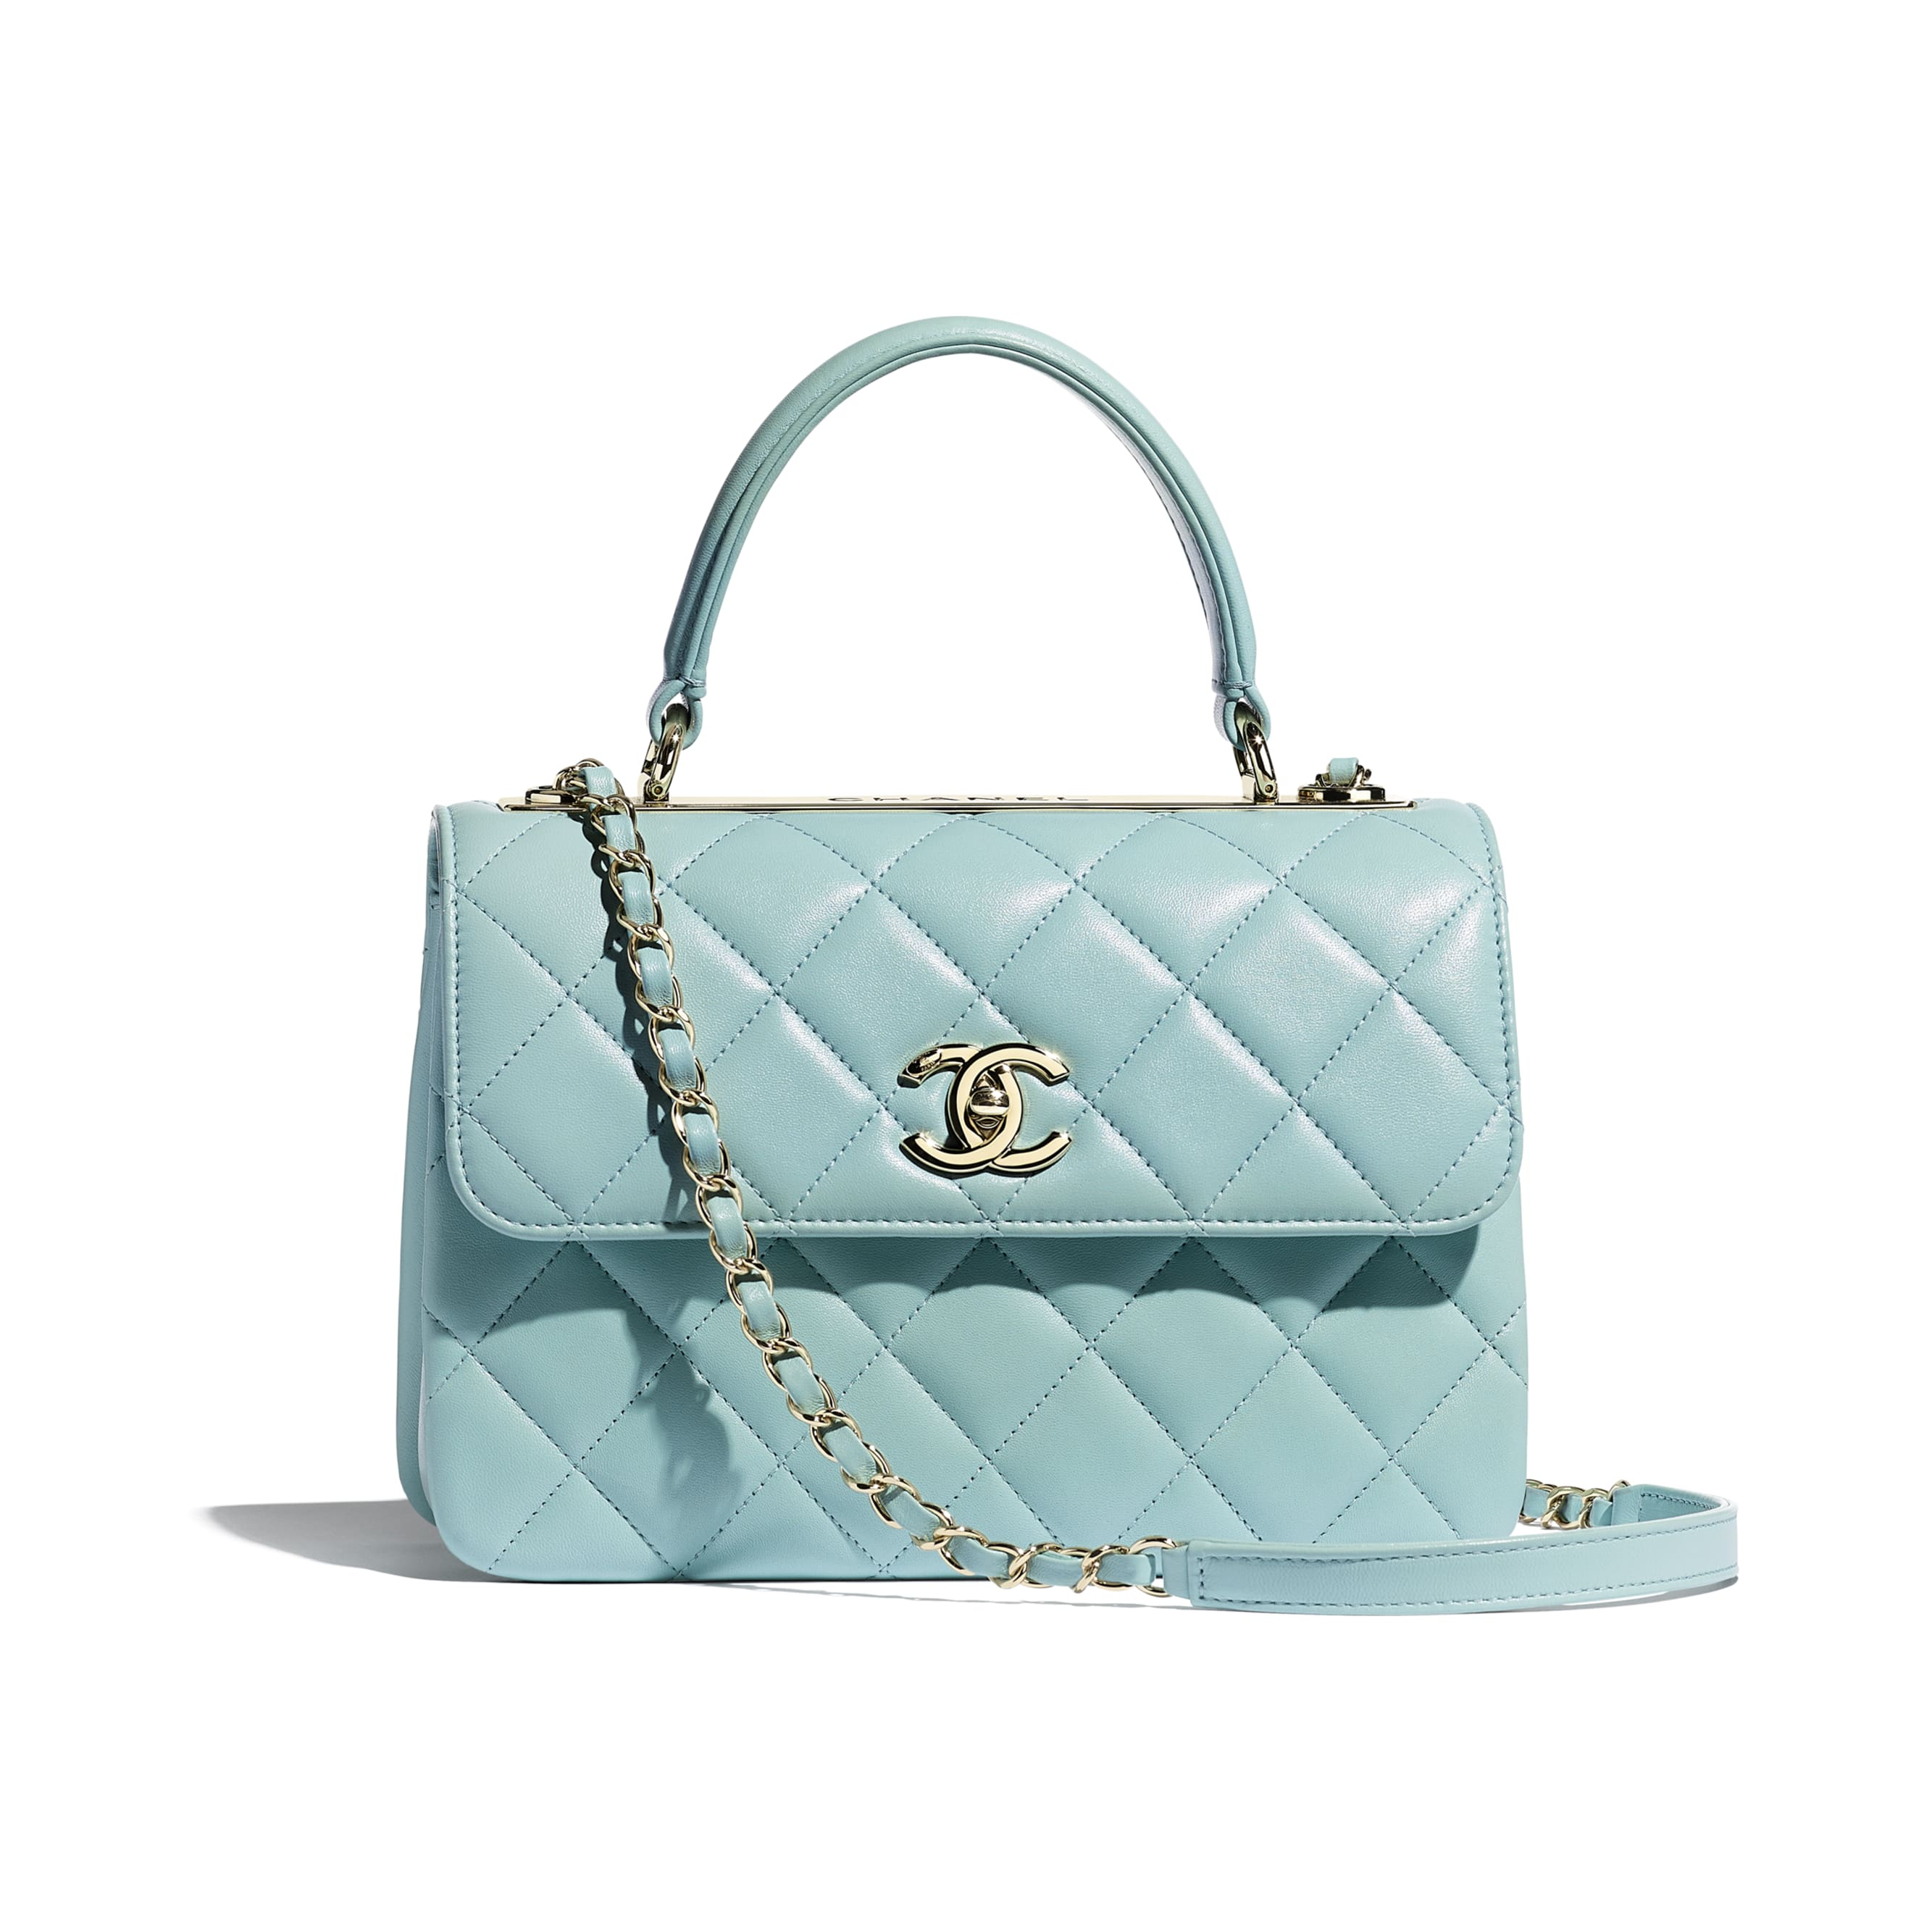 Small Flap Bag With Top Handle - Light Blue - Lambskin - CHANEL - Default view - see standard sized version